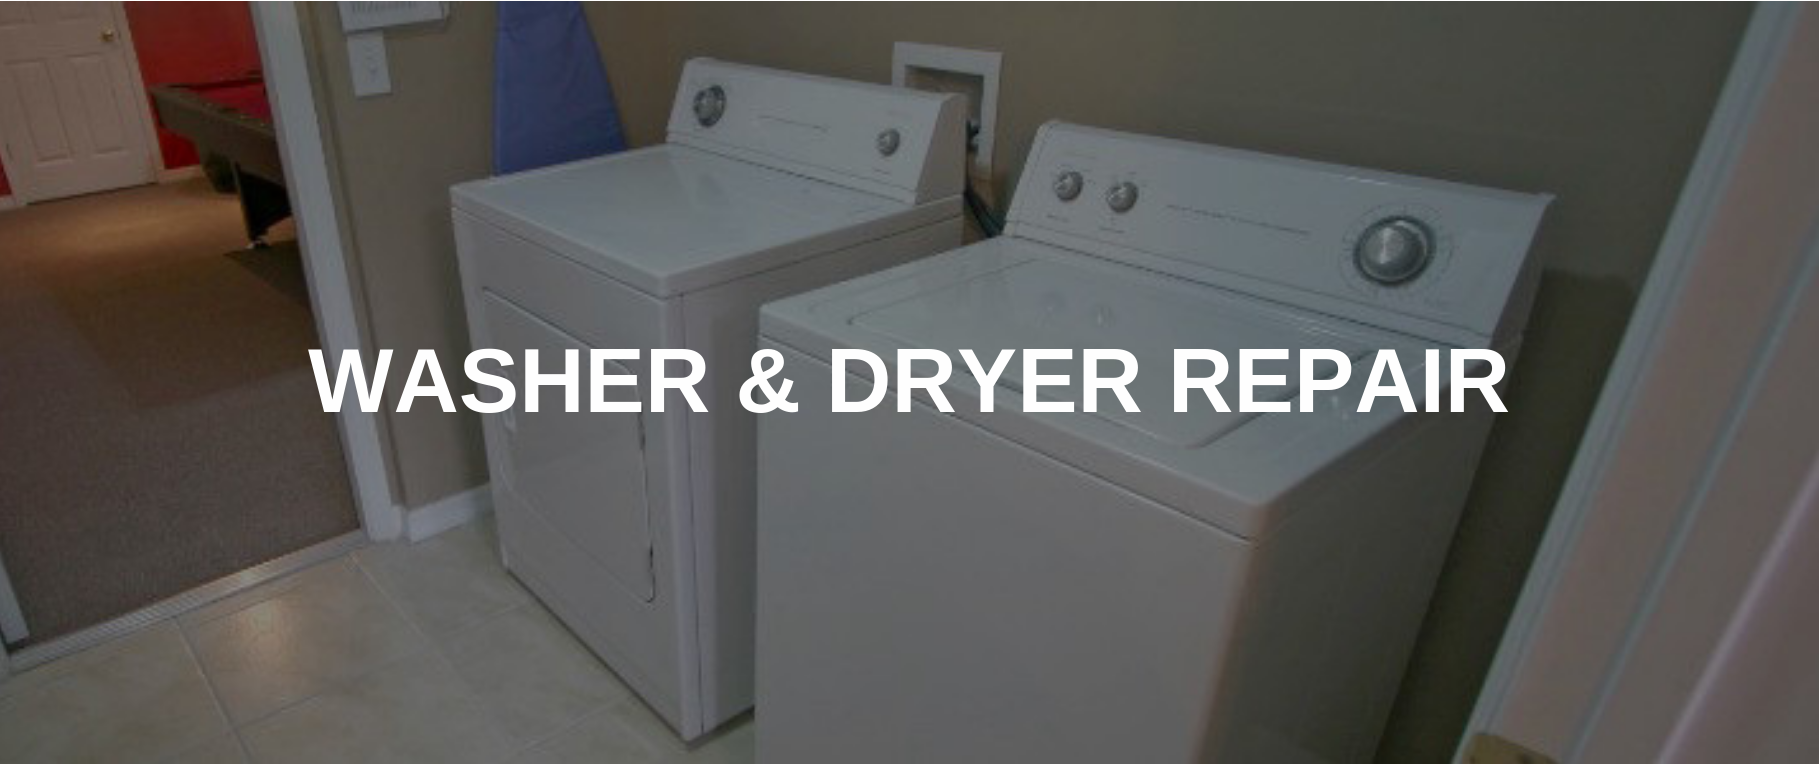 washing machine repair spokane